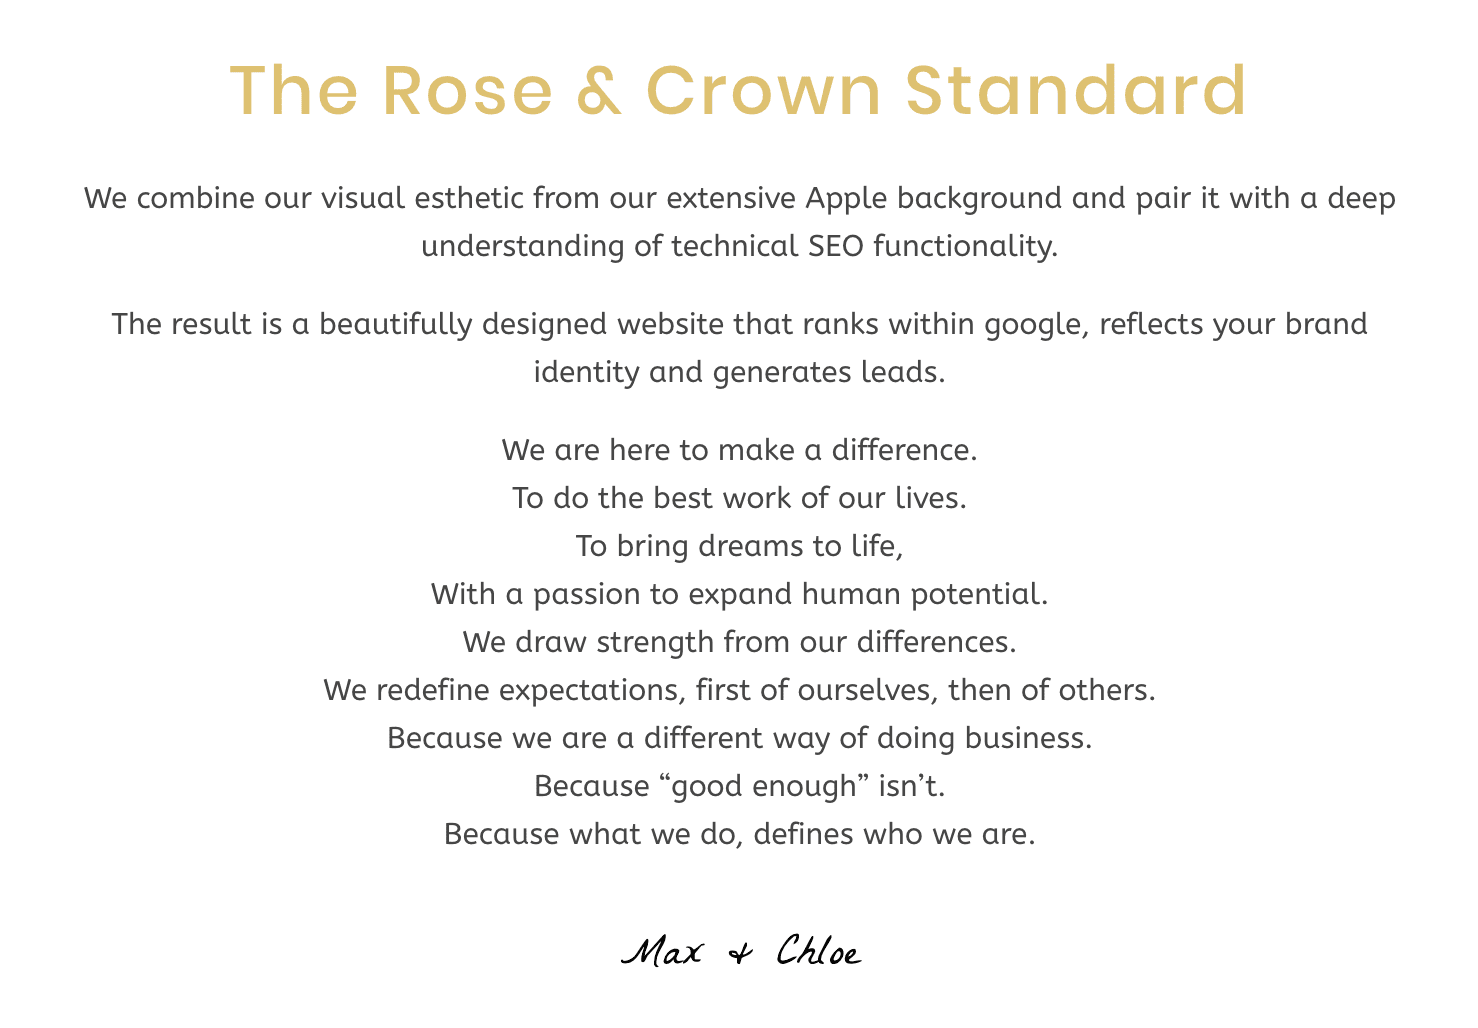 This image describes the Rose & Crown Standard